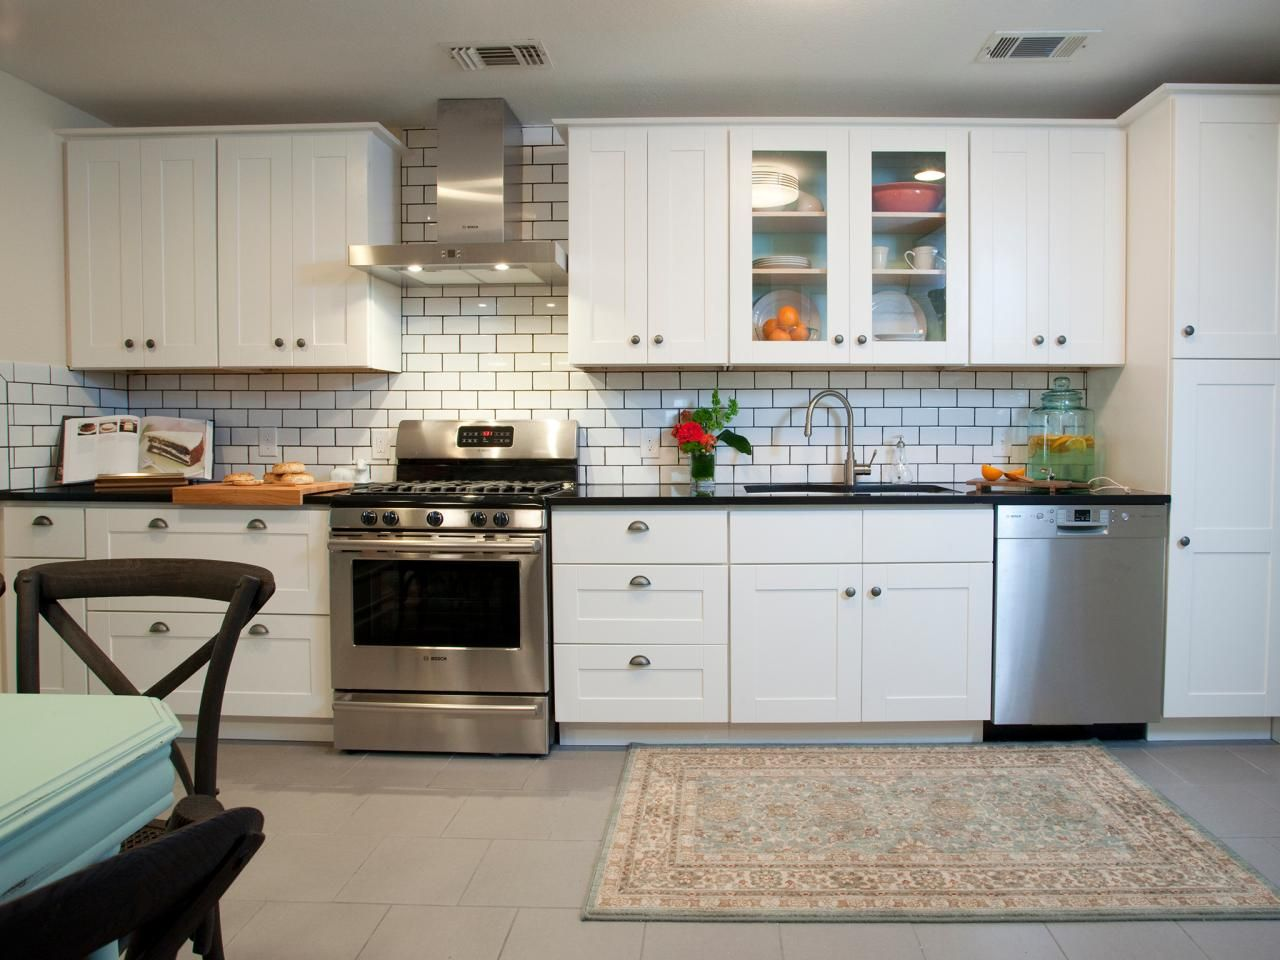 Dress Your Kitchen In Style With Some White Subway Tiles - White kitchens with subway tile backsplash